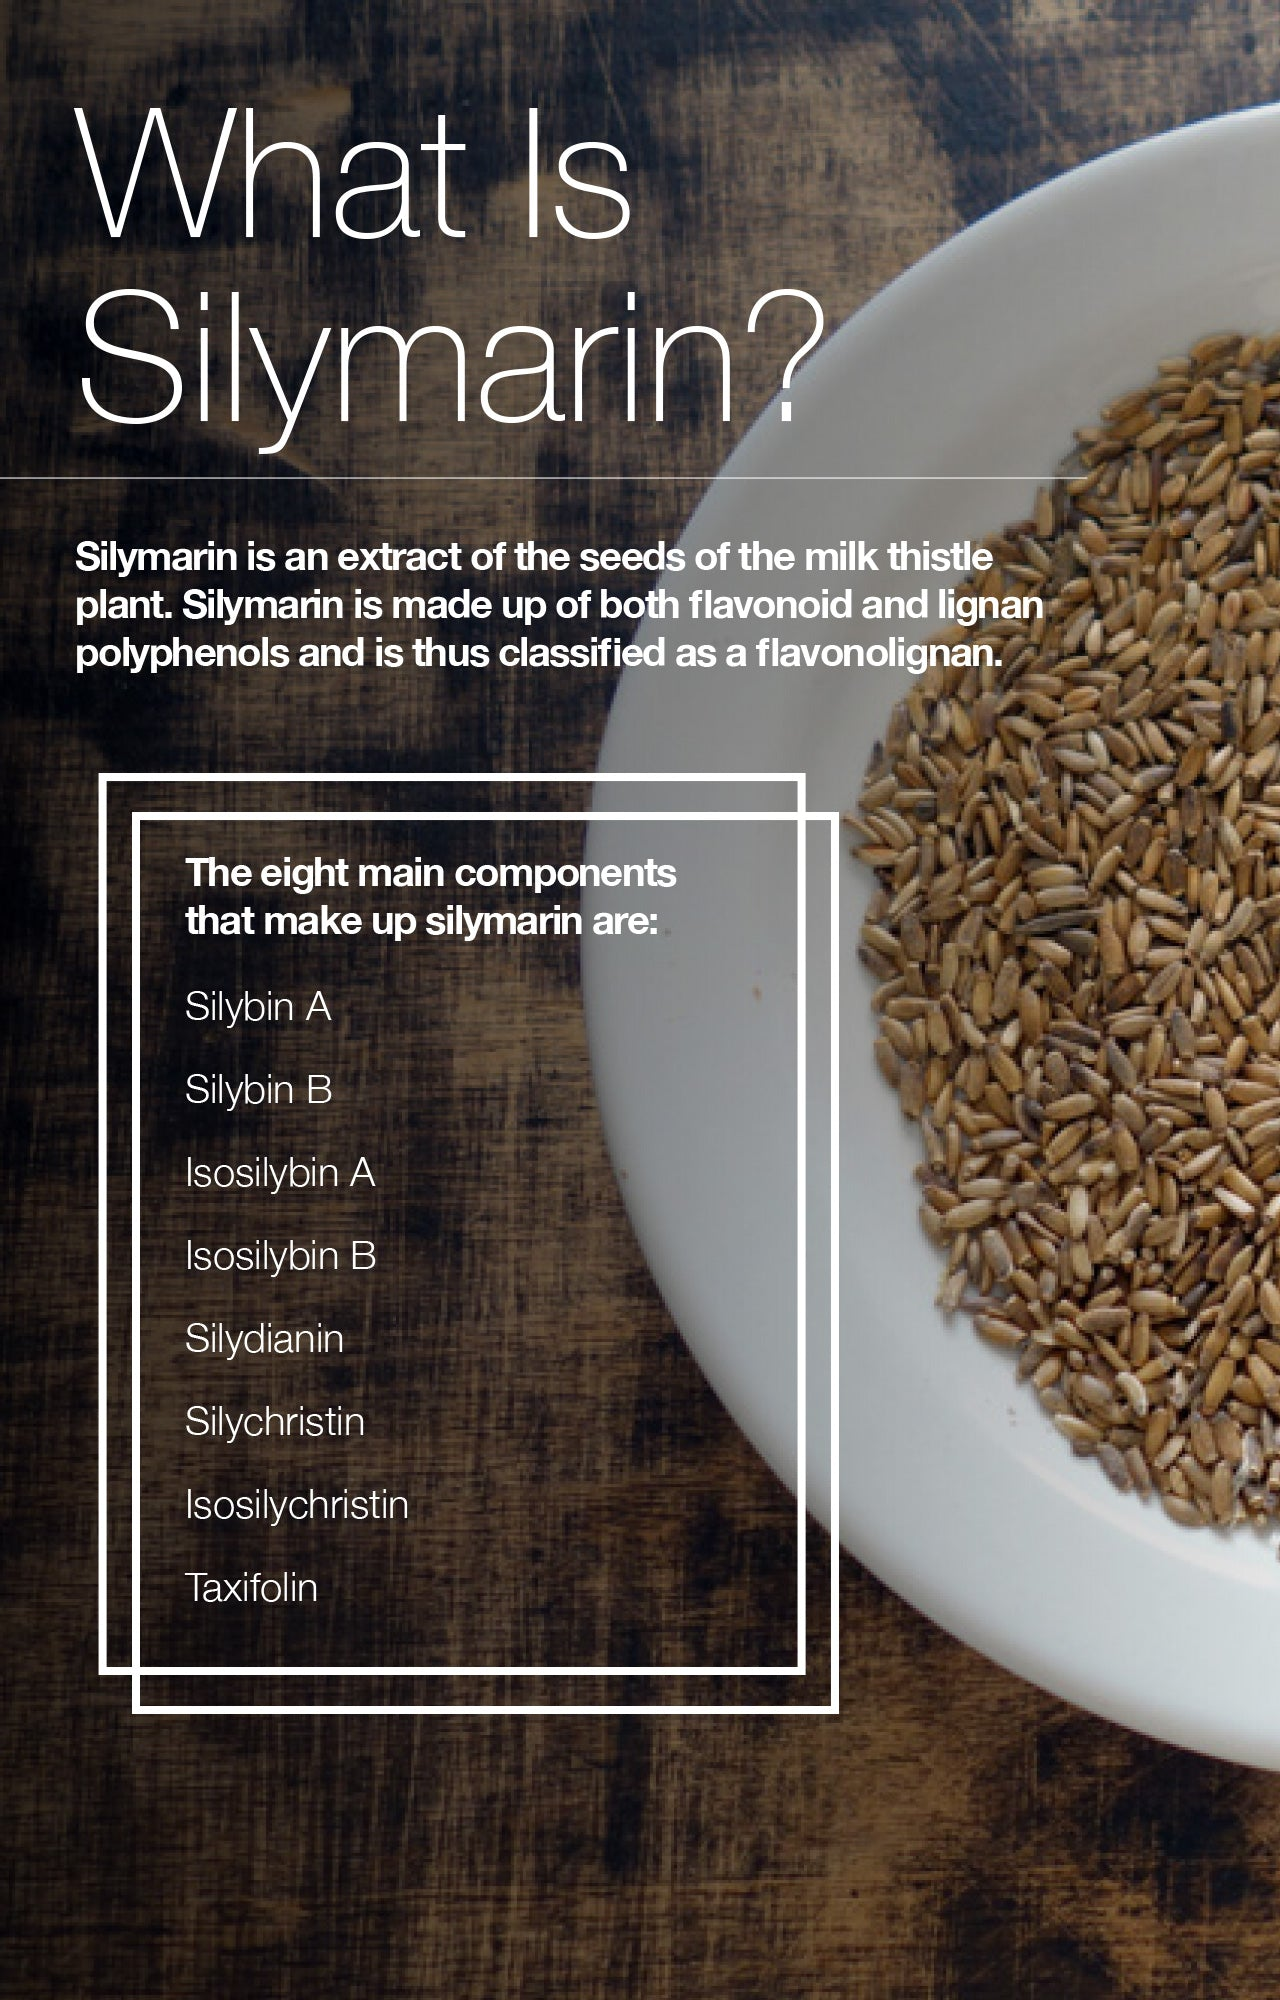 What Is Silymarin?